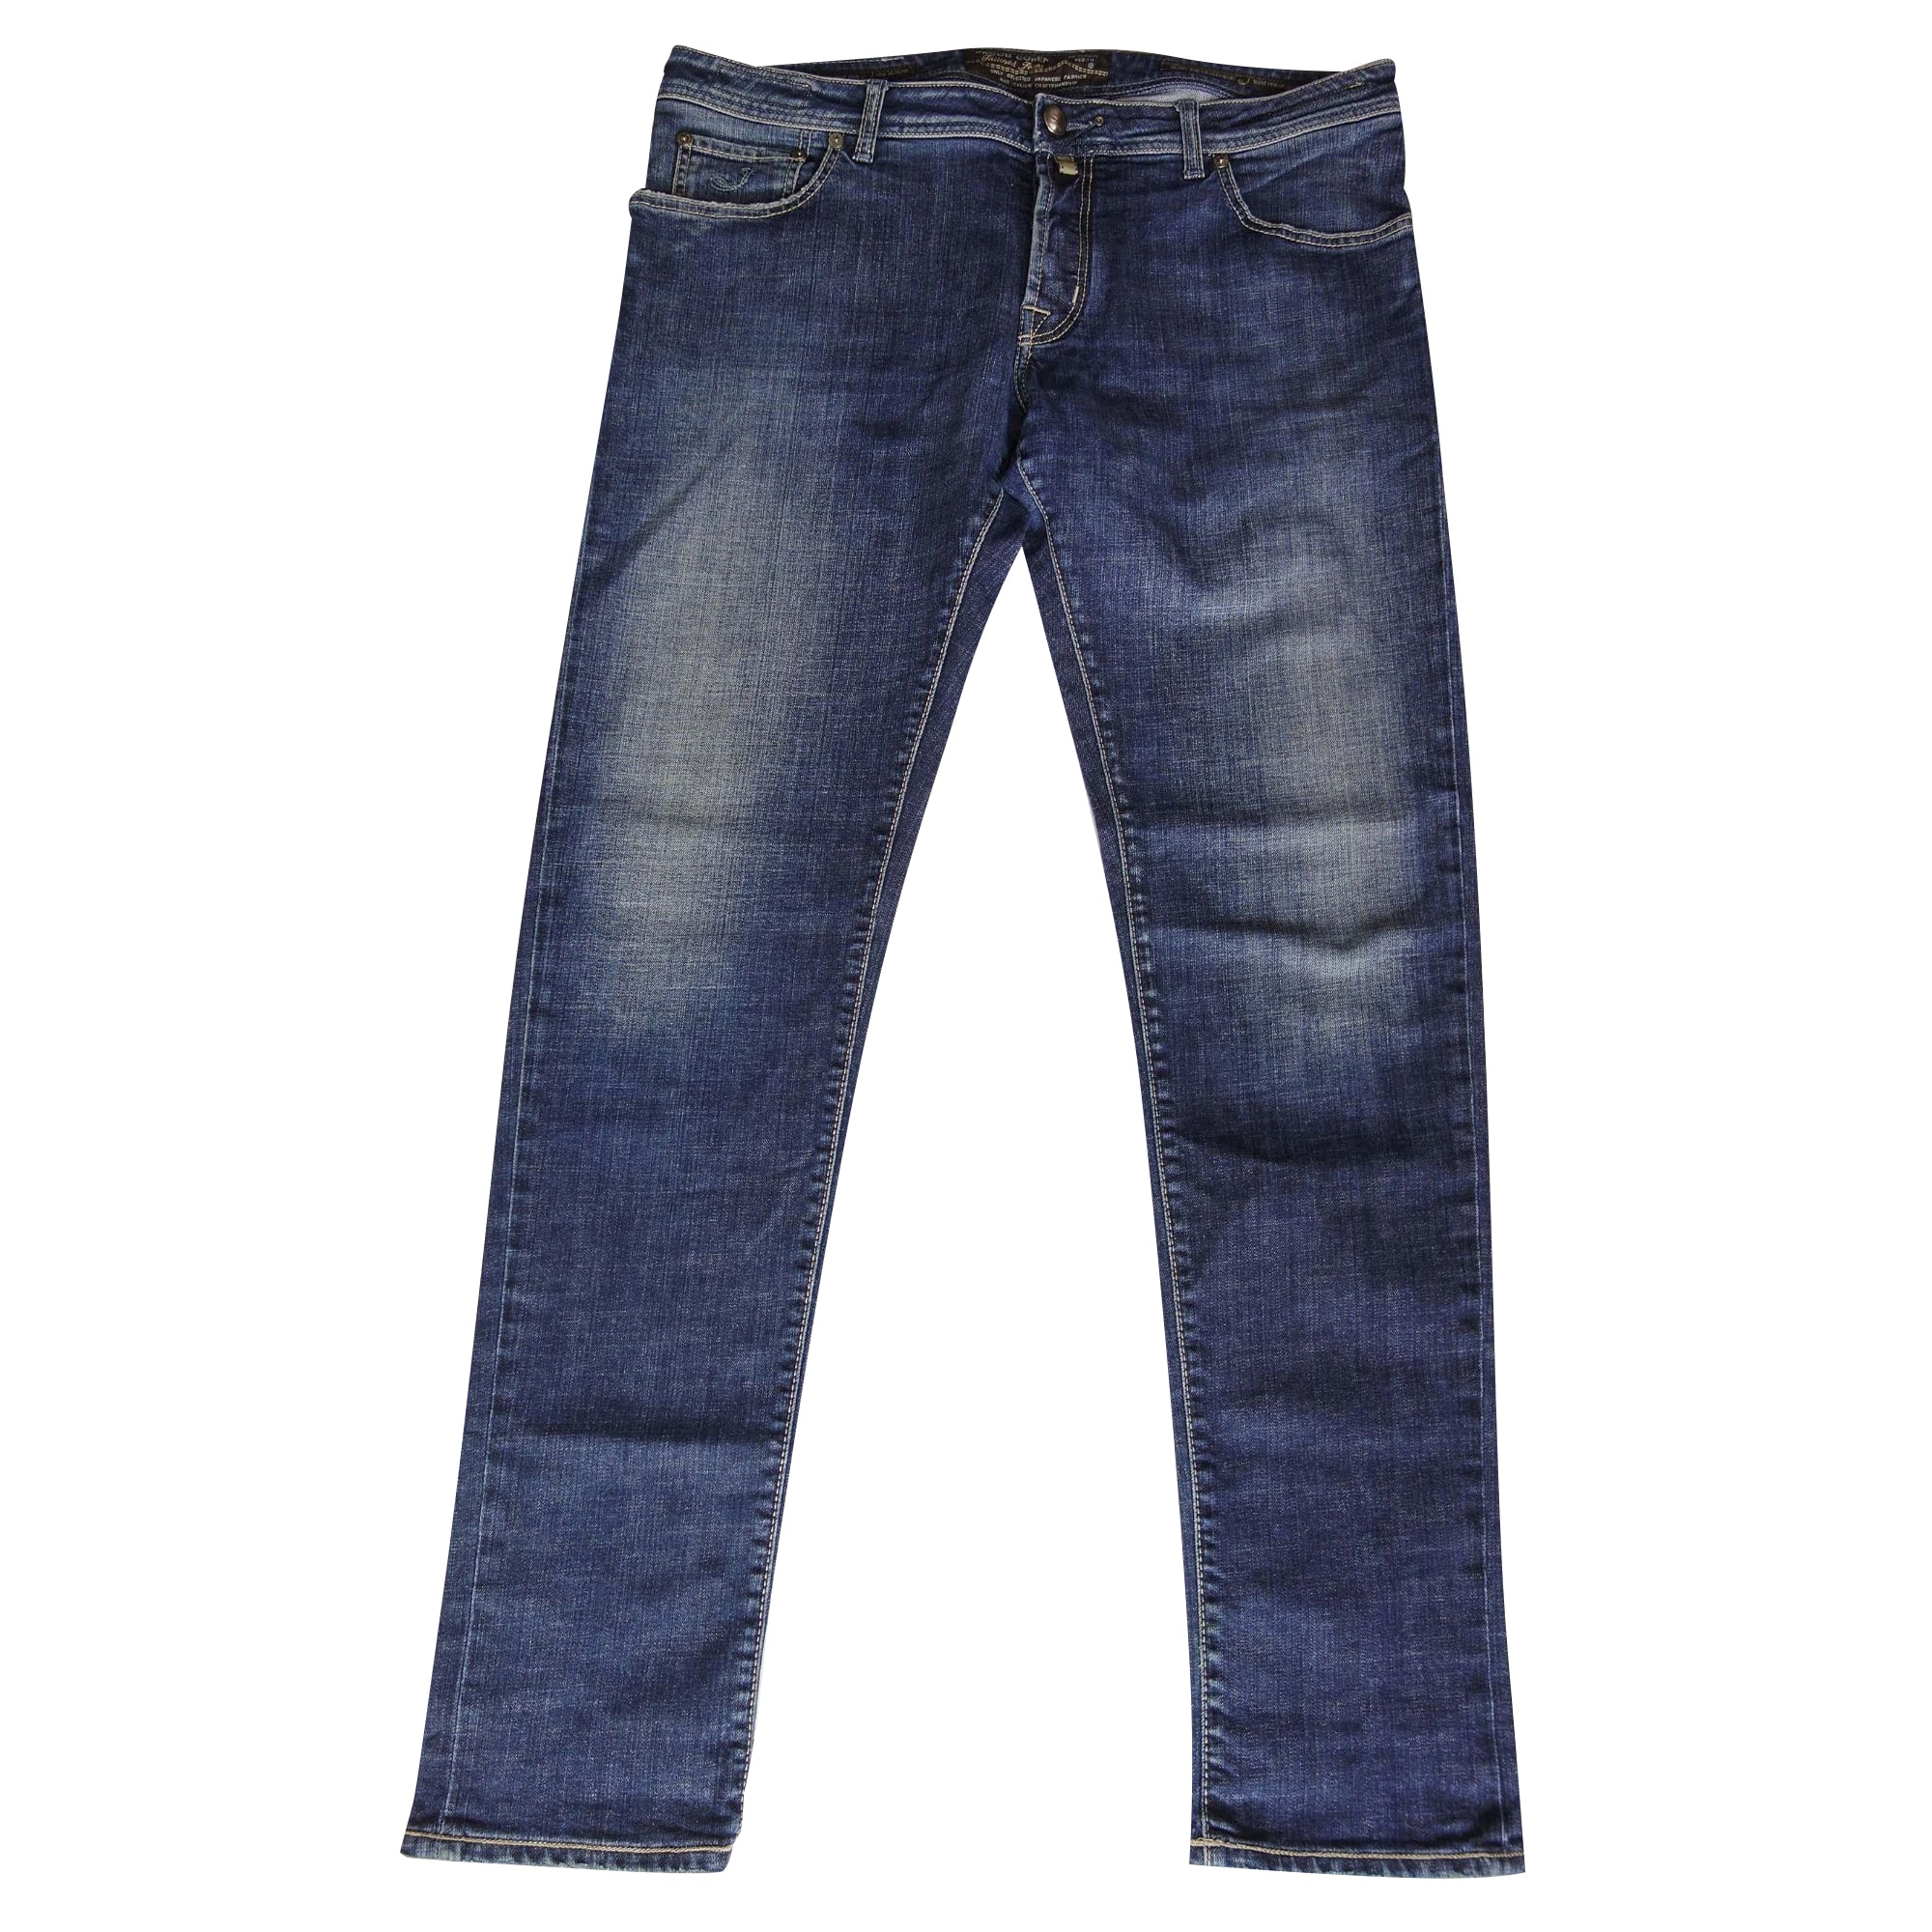 Skinny Jeans JACOB COHEN Blue, navy, turquoise